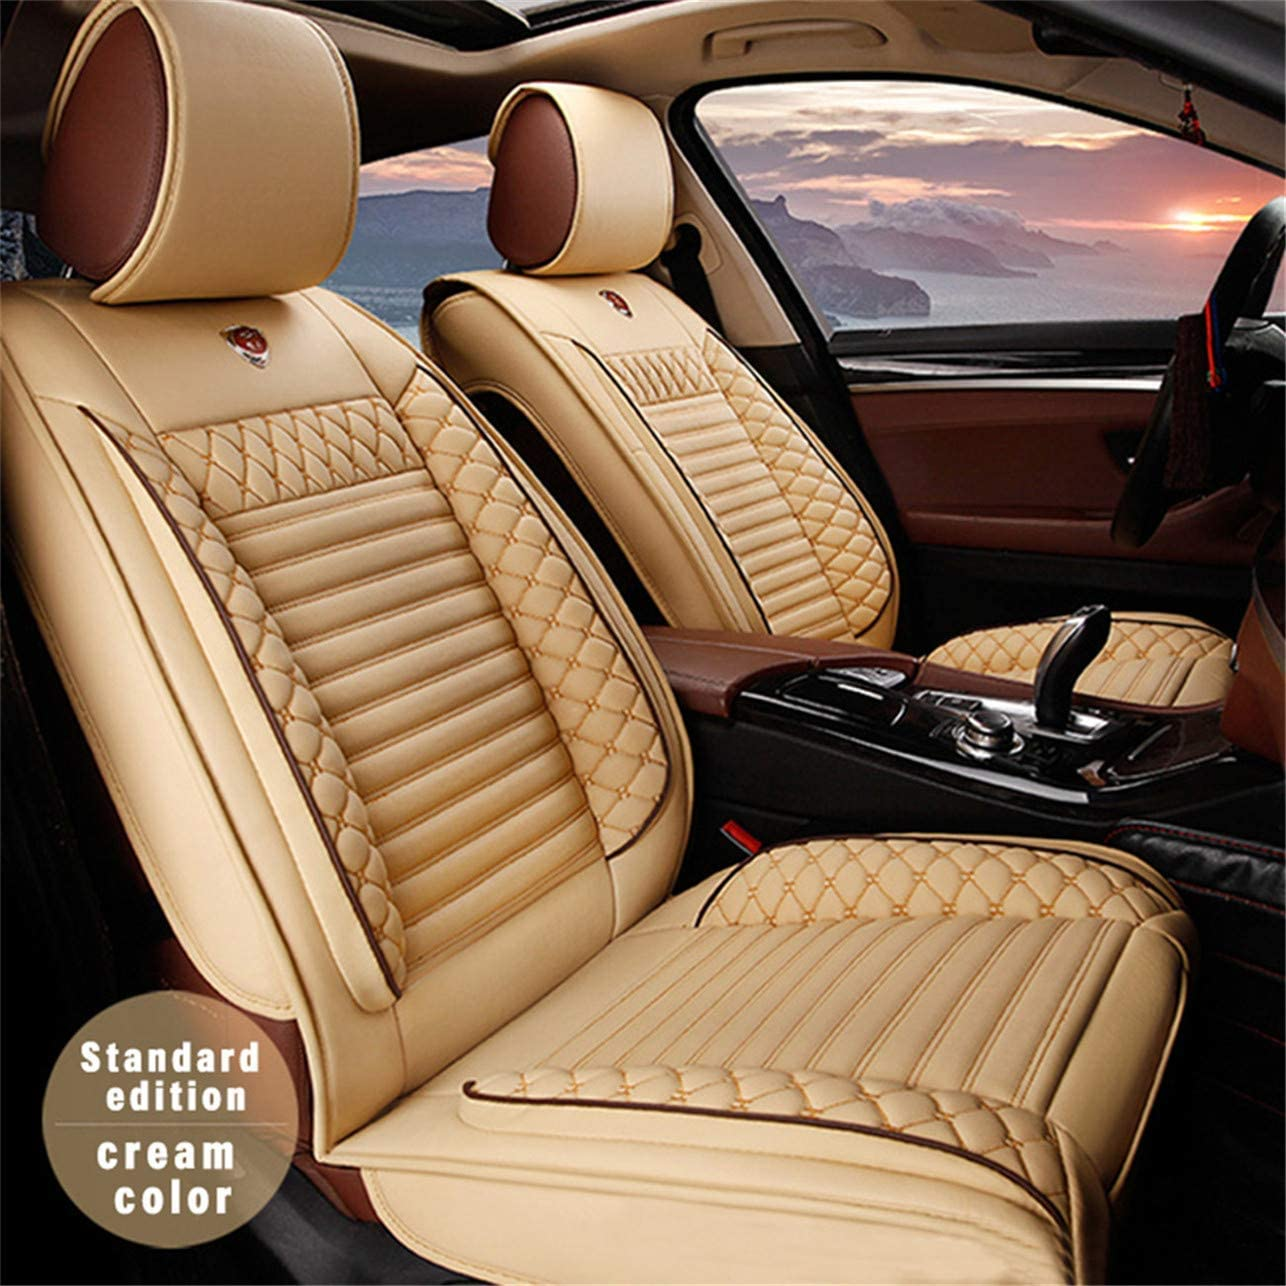 All Weather Custom Fit Seat Covers for Lincoln MKC MKZ MKX 5-Seat Full Protection Waterproof Car Seat Covers Ultra Comfort Beige Full Set